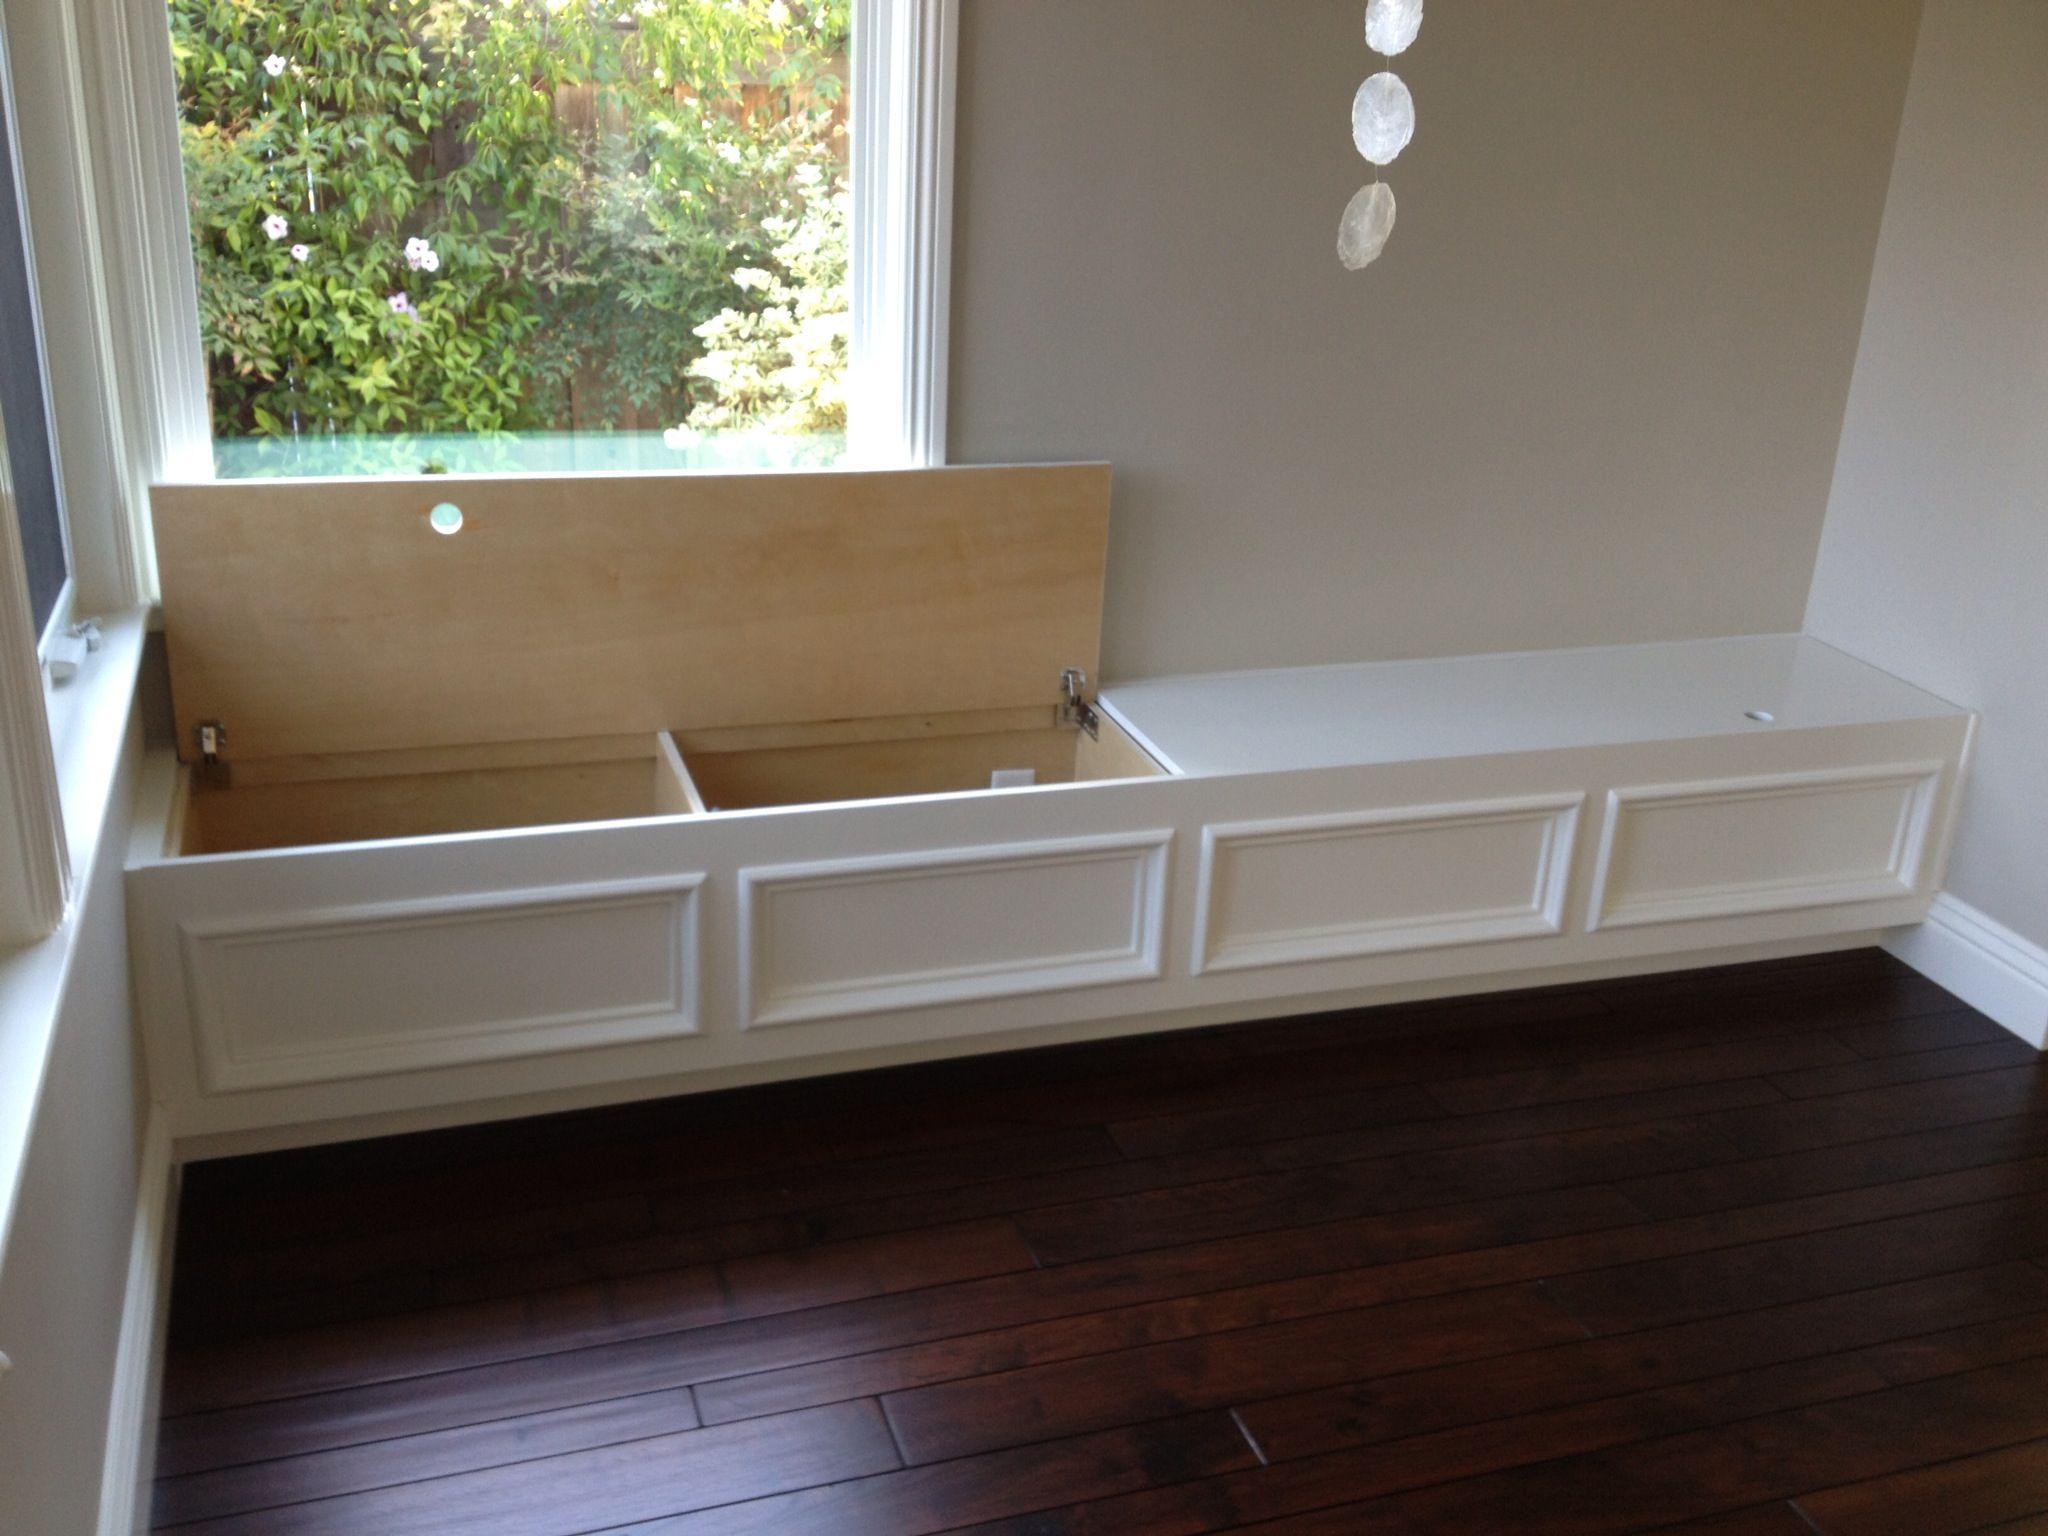 Extra Long Storage Bench Classy Built In Bench Seat With Storage Put Along Wall In Family Room For Inspiration Design